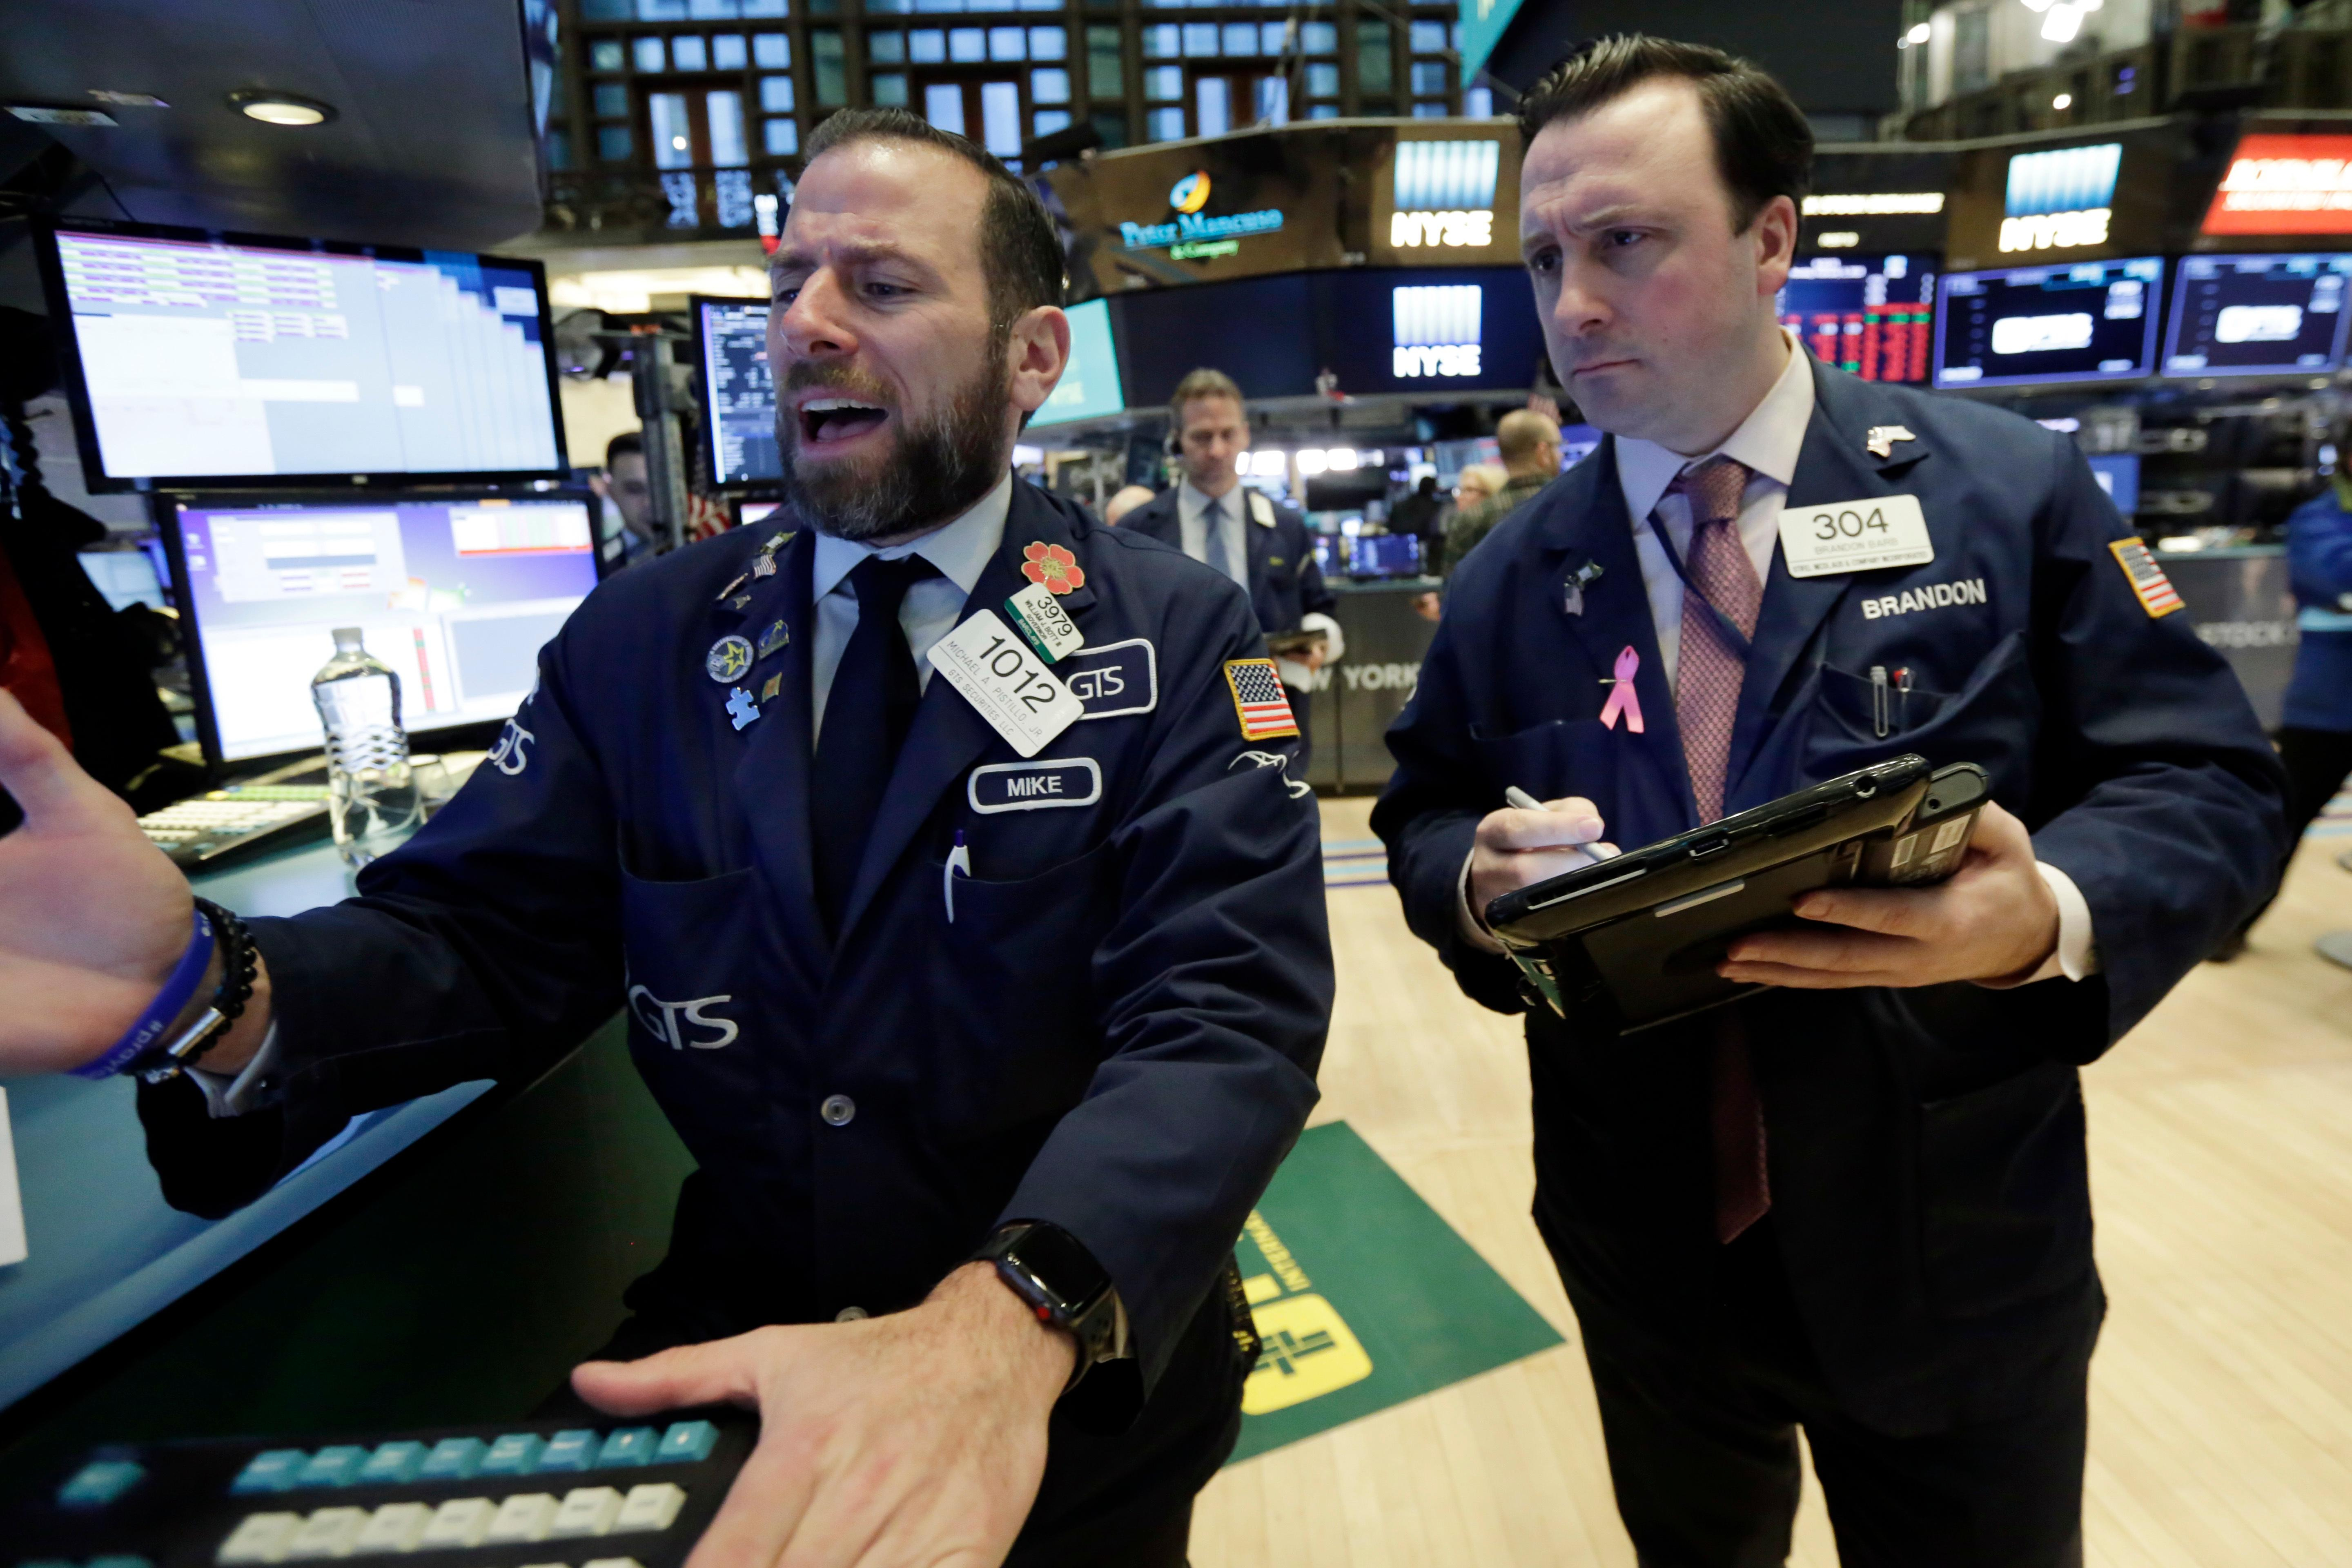 Specialist Michael Pistillo, left, and trader Brandon Barb work on the floor of the New York Stock Exchange, Monday, Feb. 5, 2018. Stock markets around the world took another pummeling Monday as investors continued to fret over rising U.S. bond yields. (AP Photo/Richard Drew)